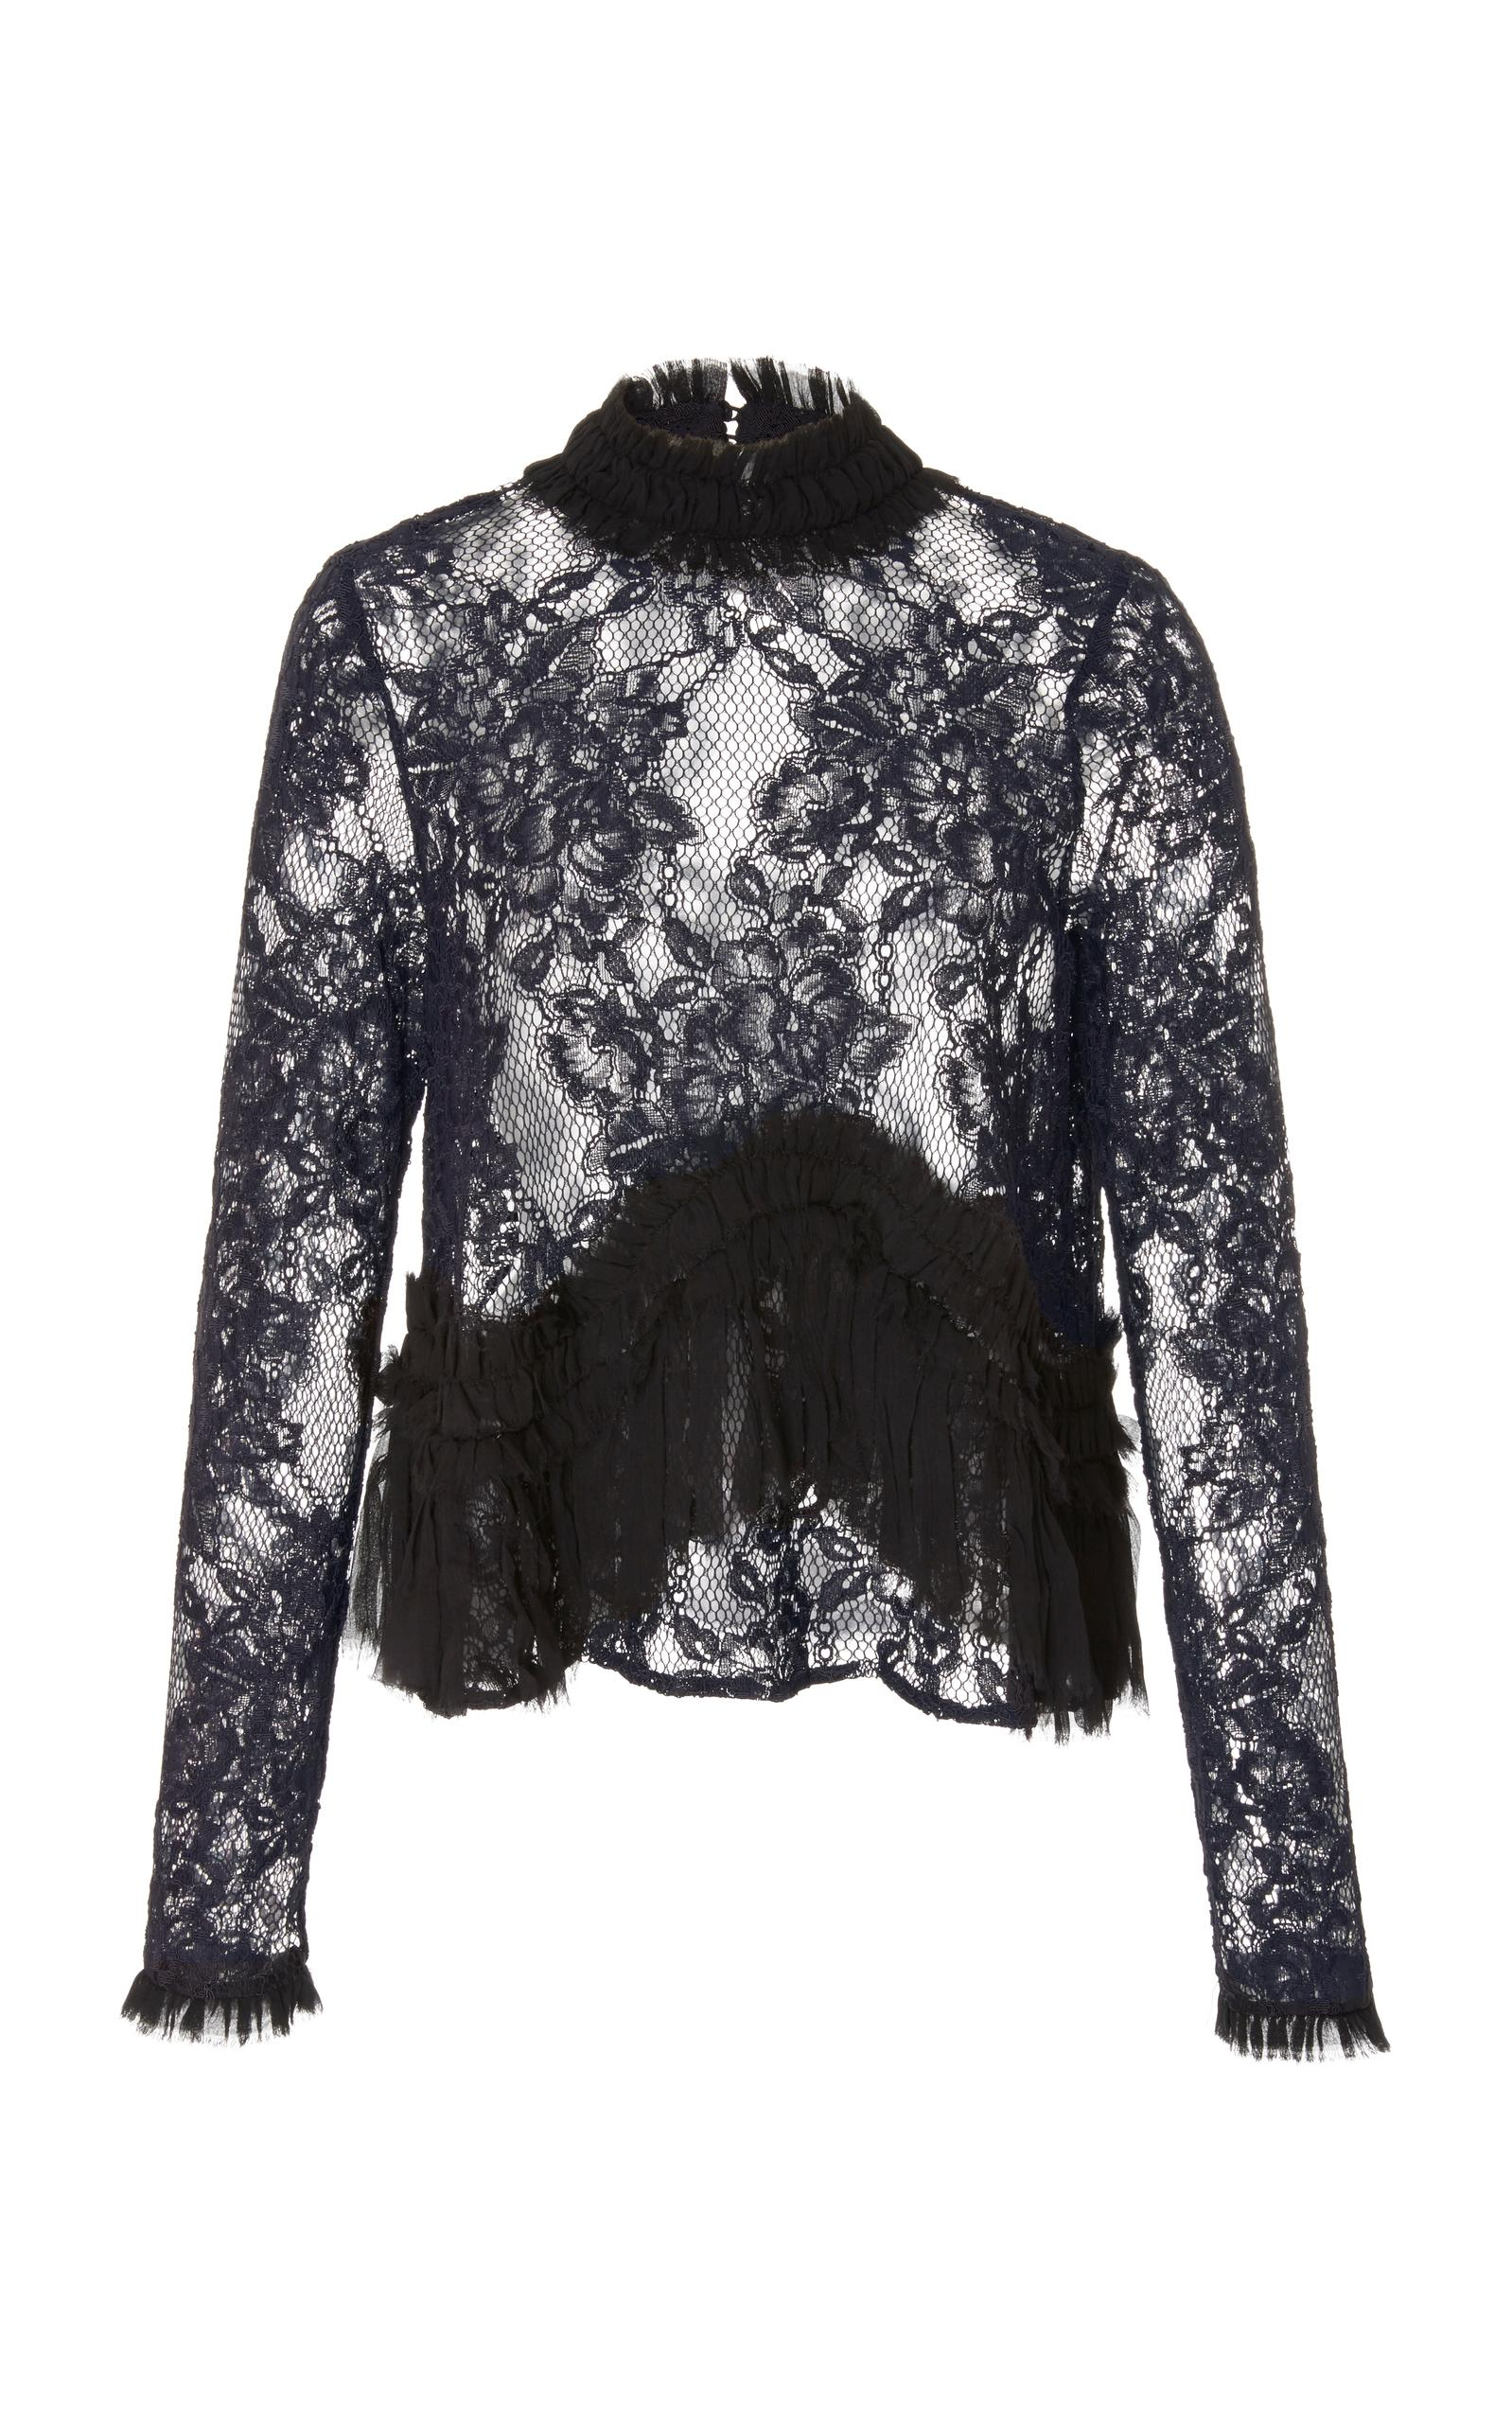 90b5dff9053db Alexis Karenza Long-Sleeve Lace Top With Ruffled Trim In Black ...